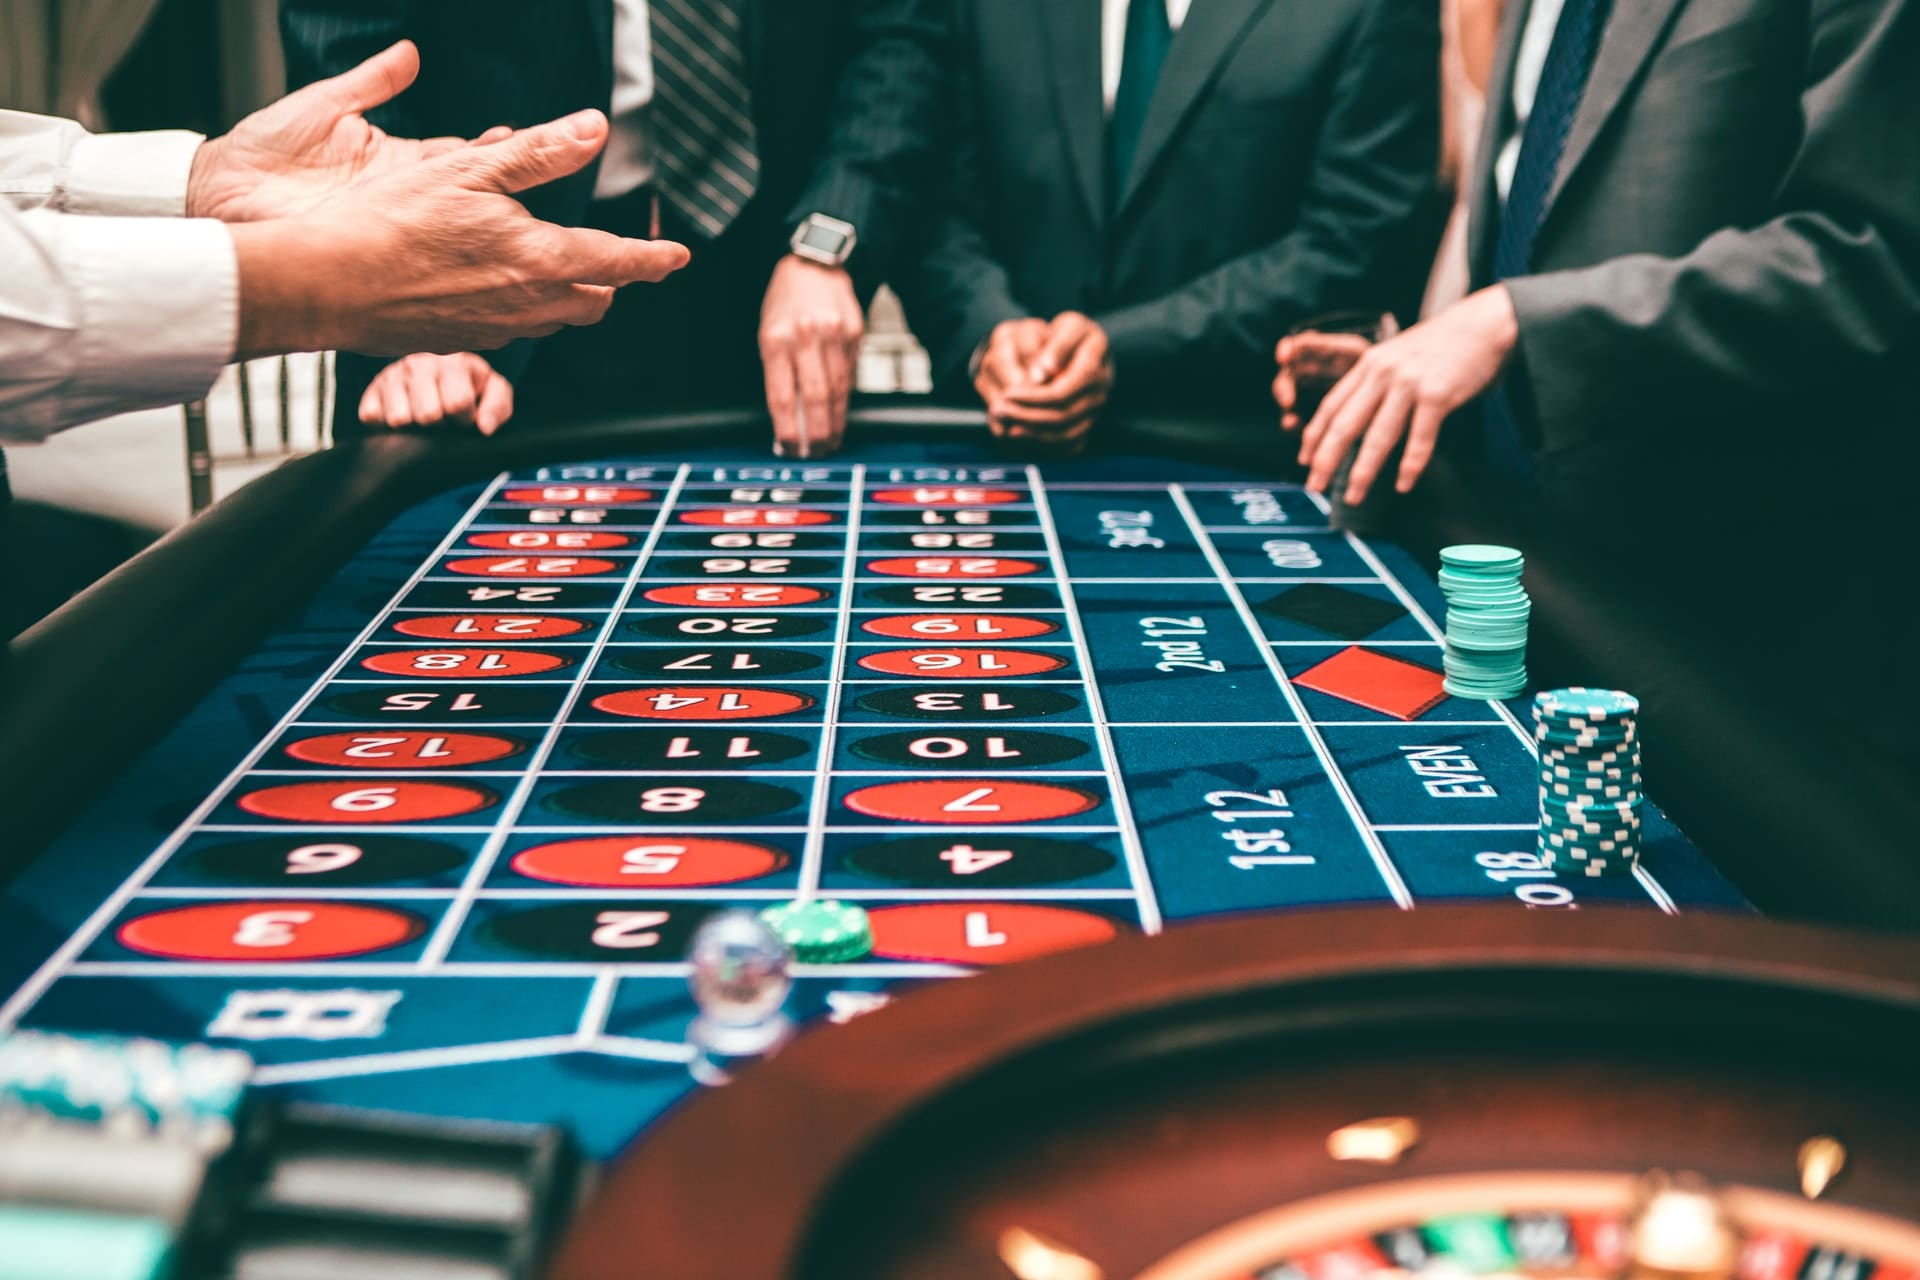 28 Gambling Statistics & Facts You Can Bet On